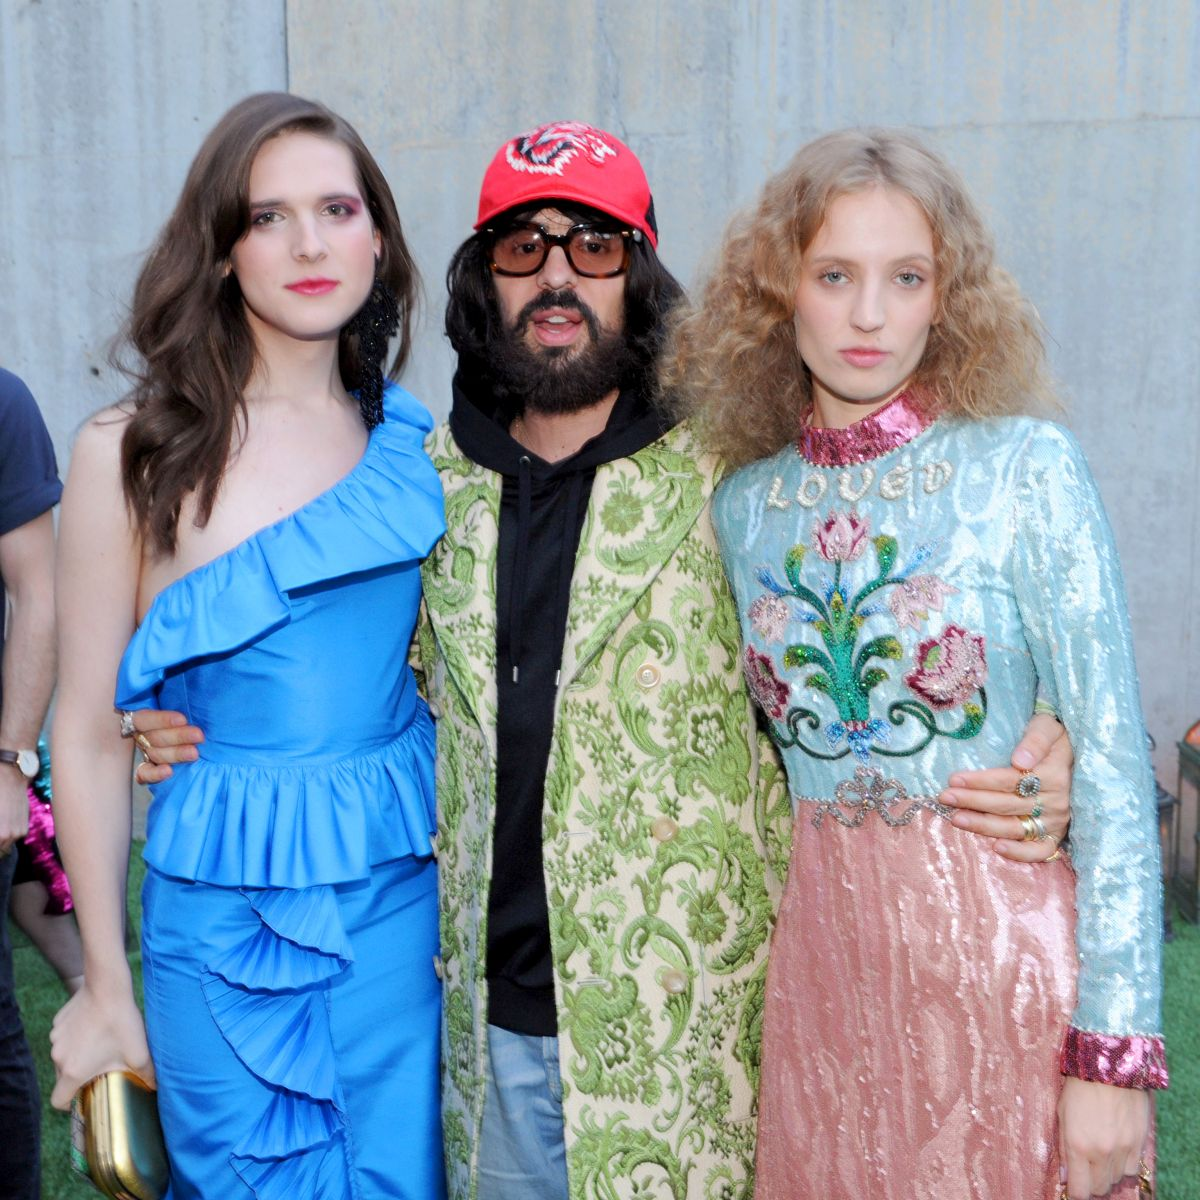 NEW YORK, NY - MAY 02: Model Hari Nef, Gucci Creative Director Alessandro Michele and Artist Petra Collins attend the Gucci Bloom Fragrance Launch at MoMA PS.1 on May 2, 2017 in New York City. (Photo by Craig Barritt/Getty Images for Gucci)